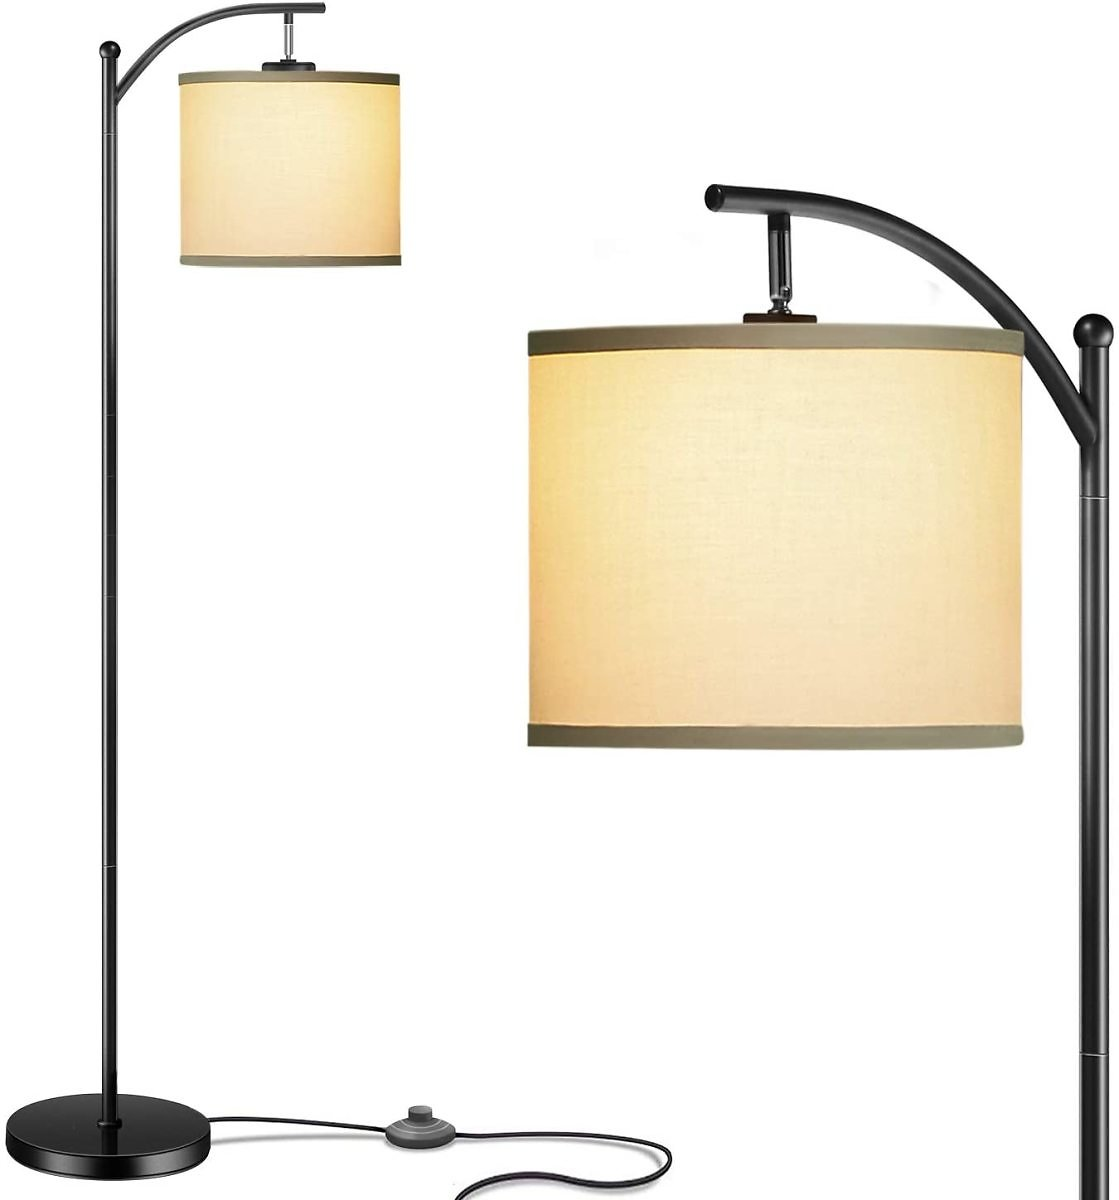 Floor Lamp with Lamp Shade and 9W LED Bulb